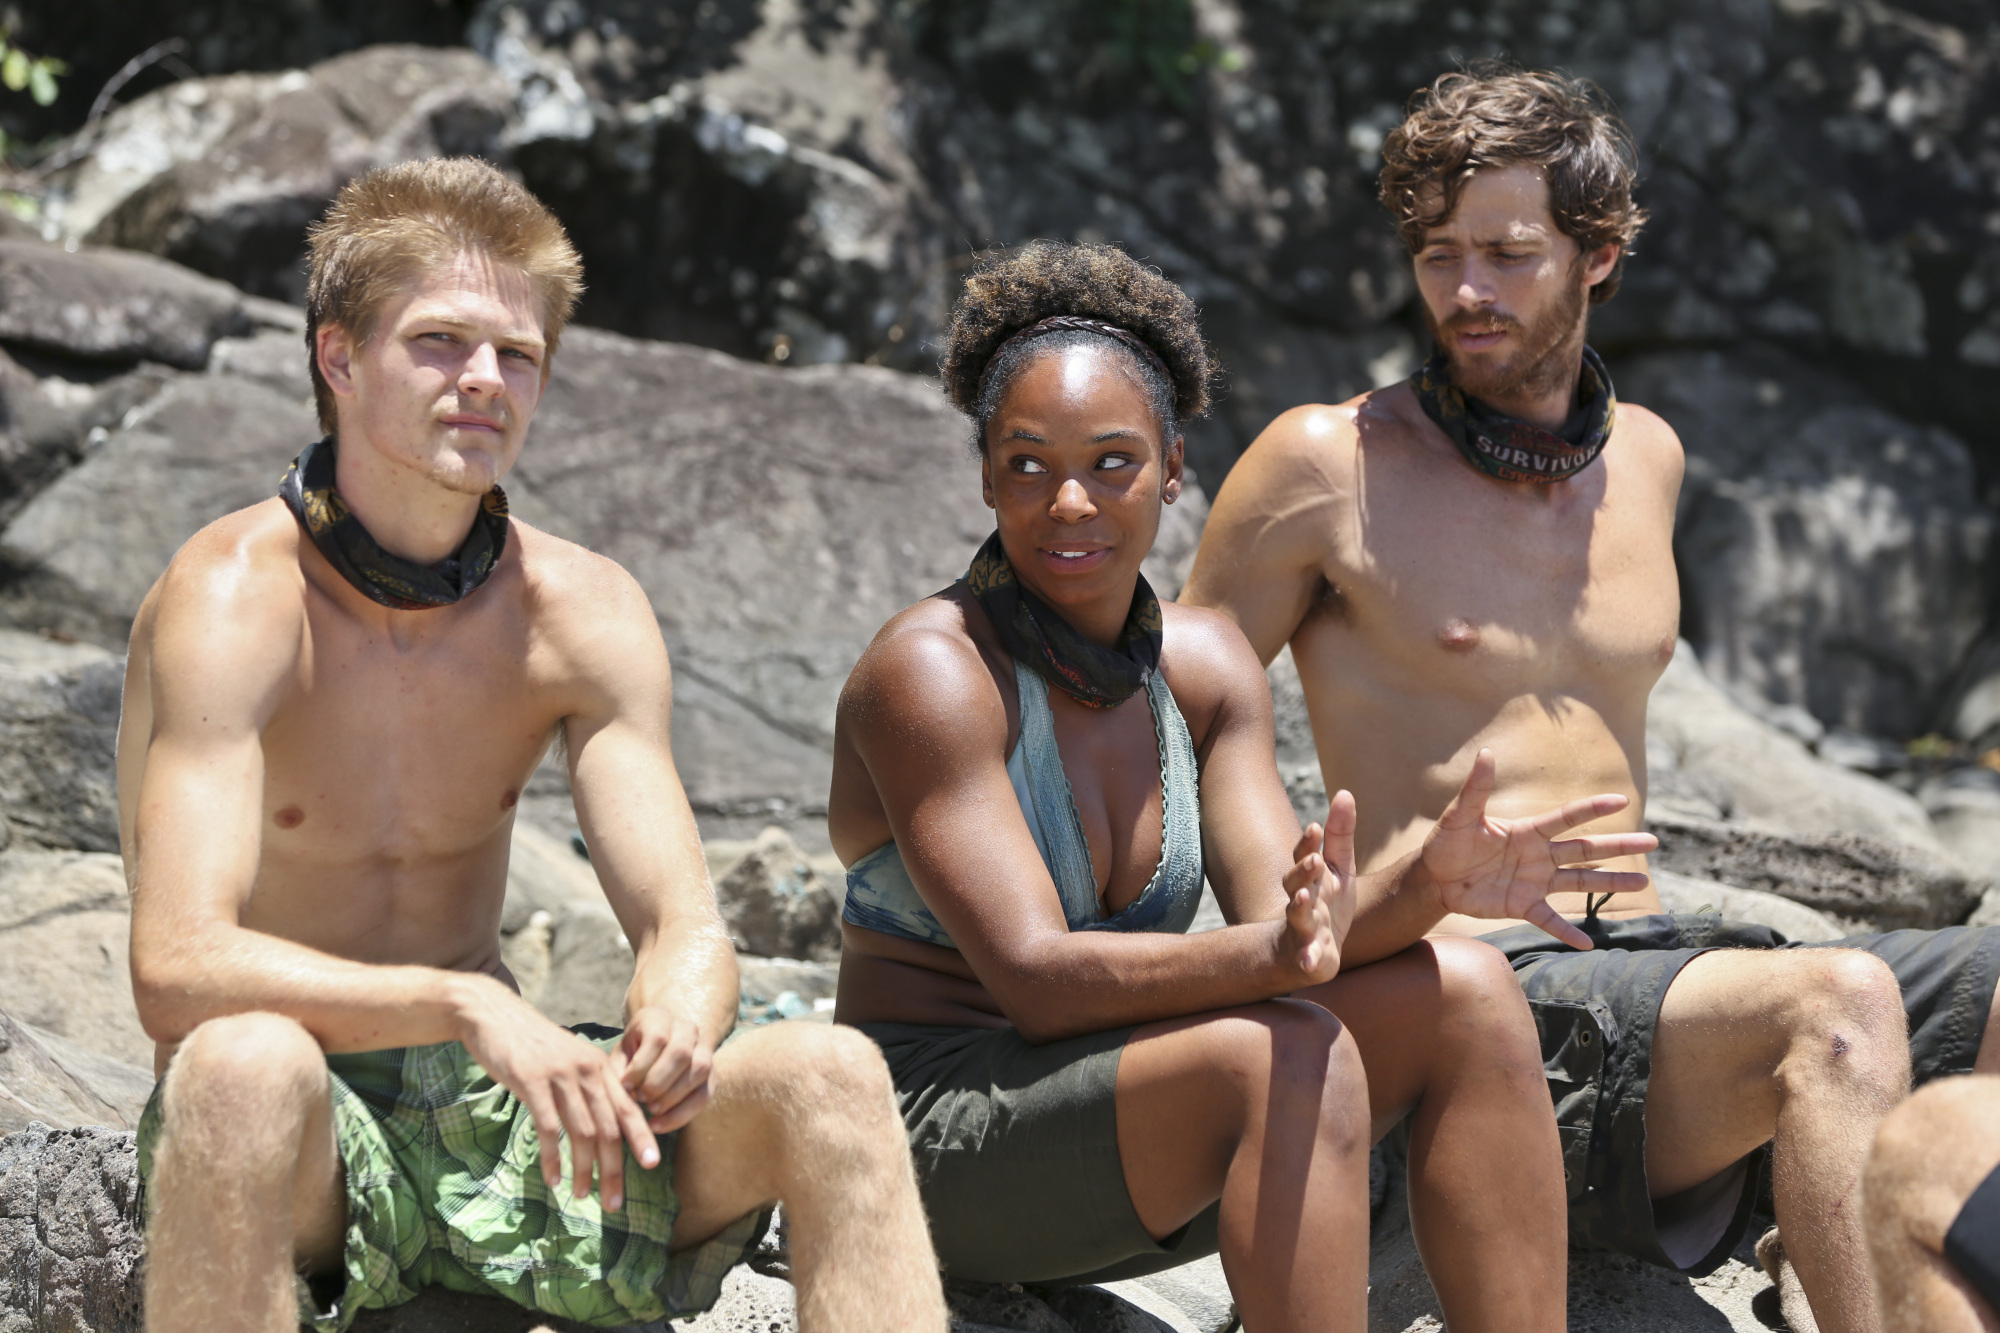 Spencer, Tasha and Jeremiah in Season 28 Episode 9